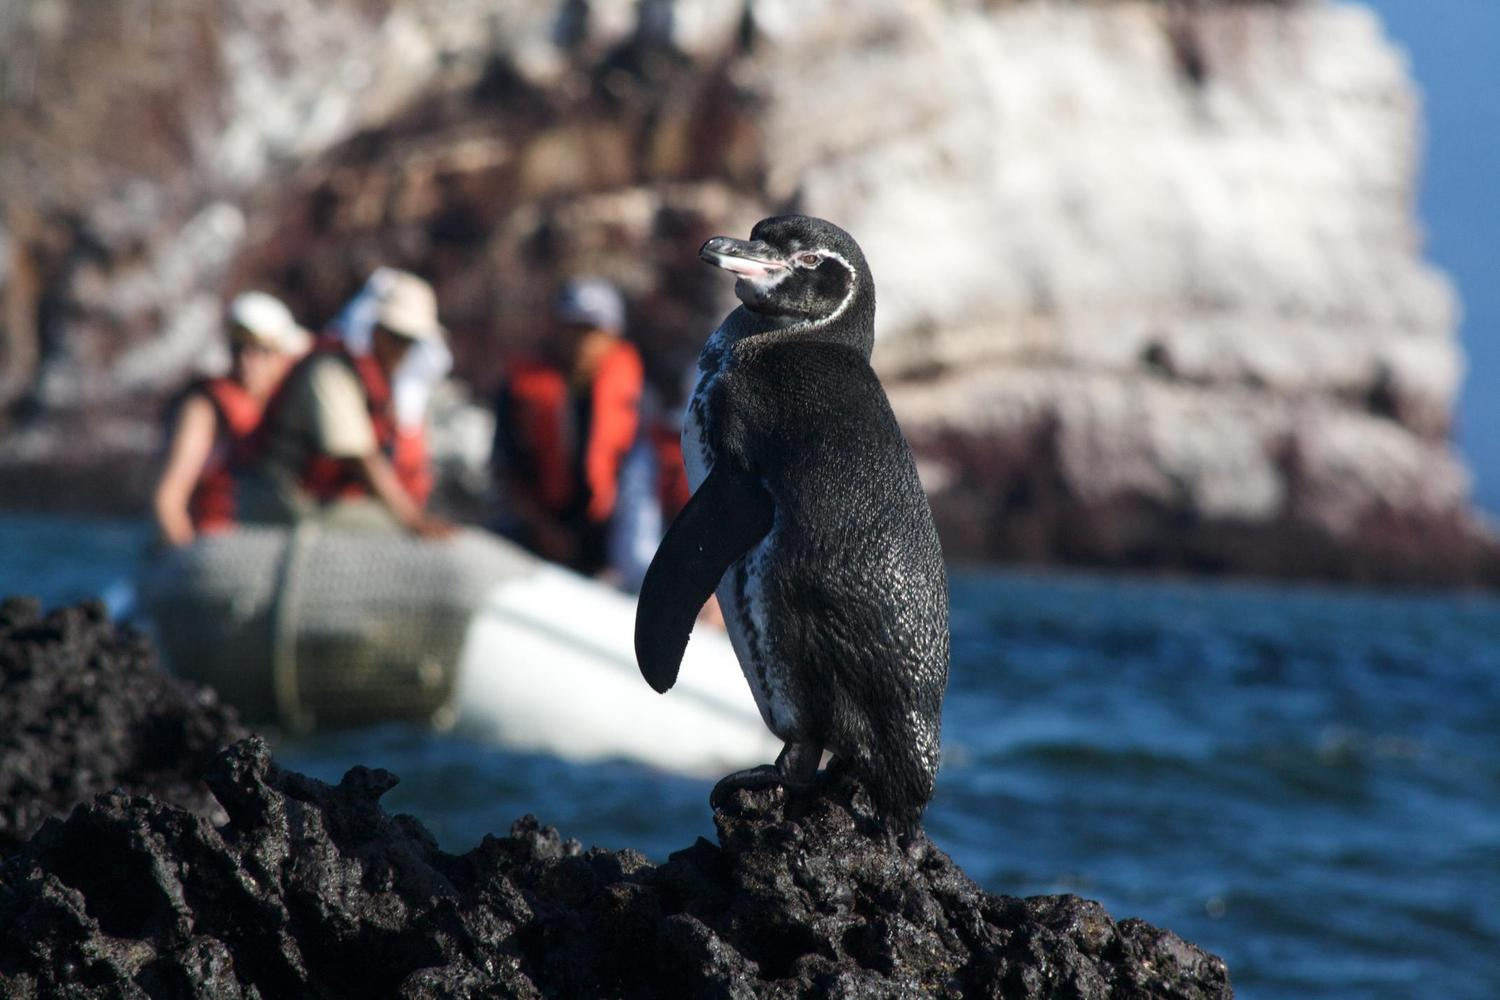 Penguin on the Mariela Islands off Isabela, Galapagos